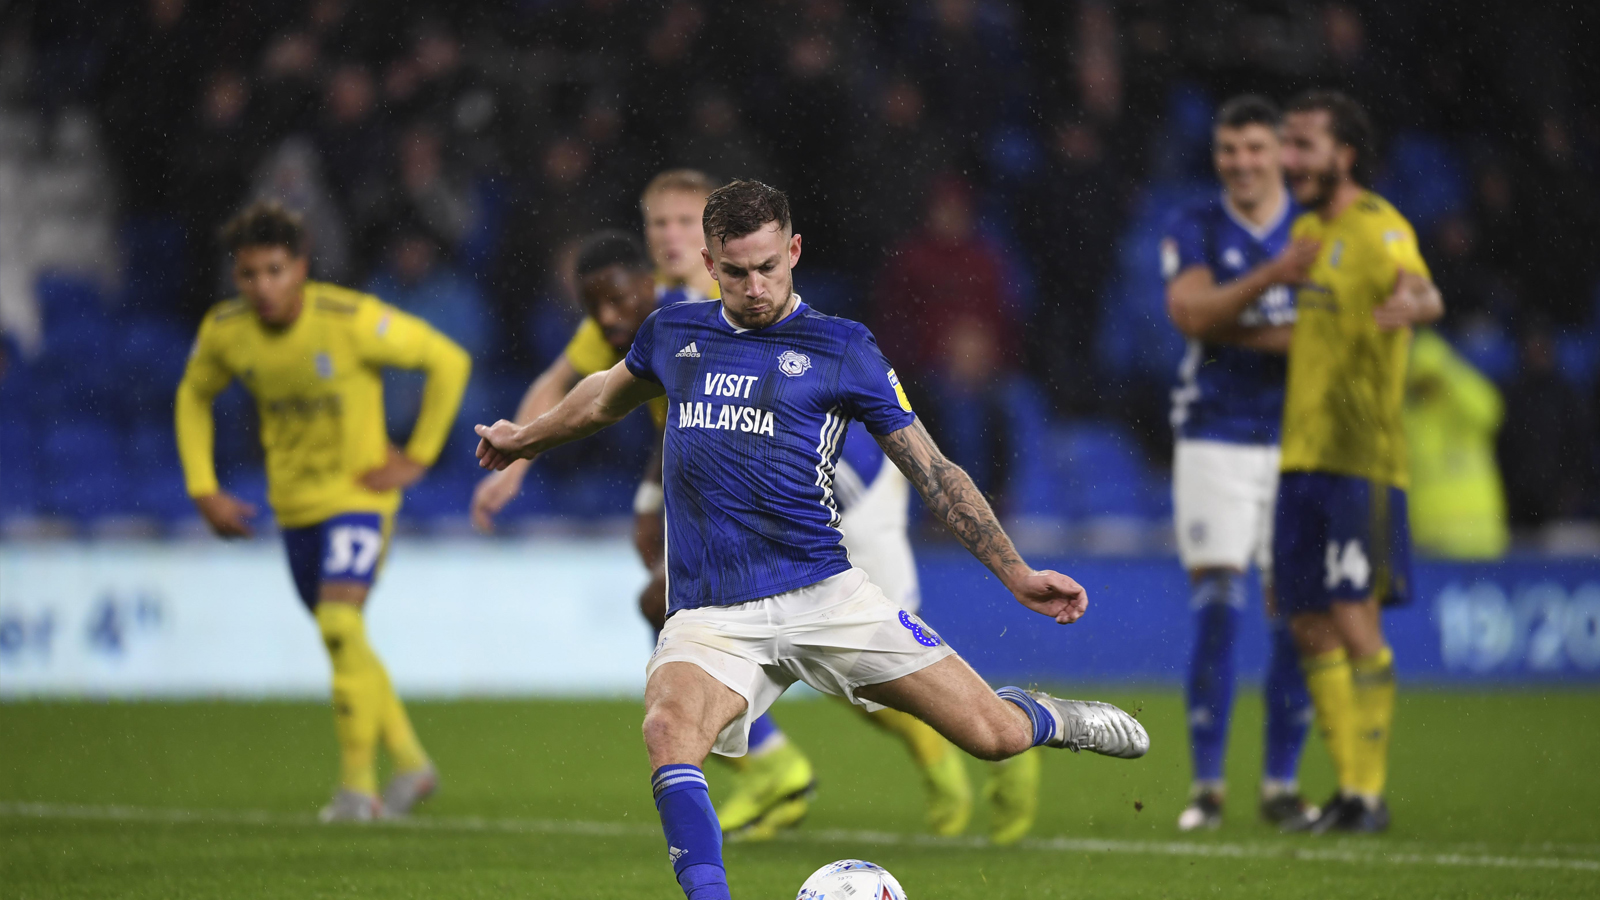 Joe Ralls penalty hero